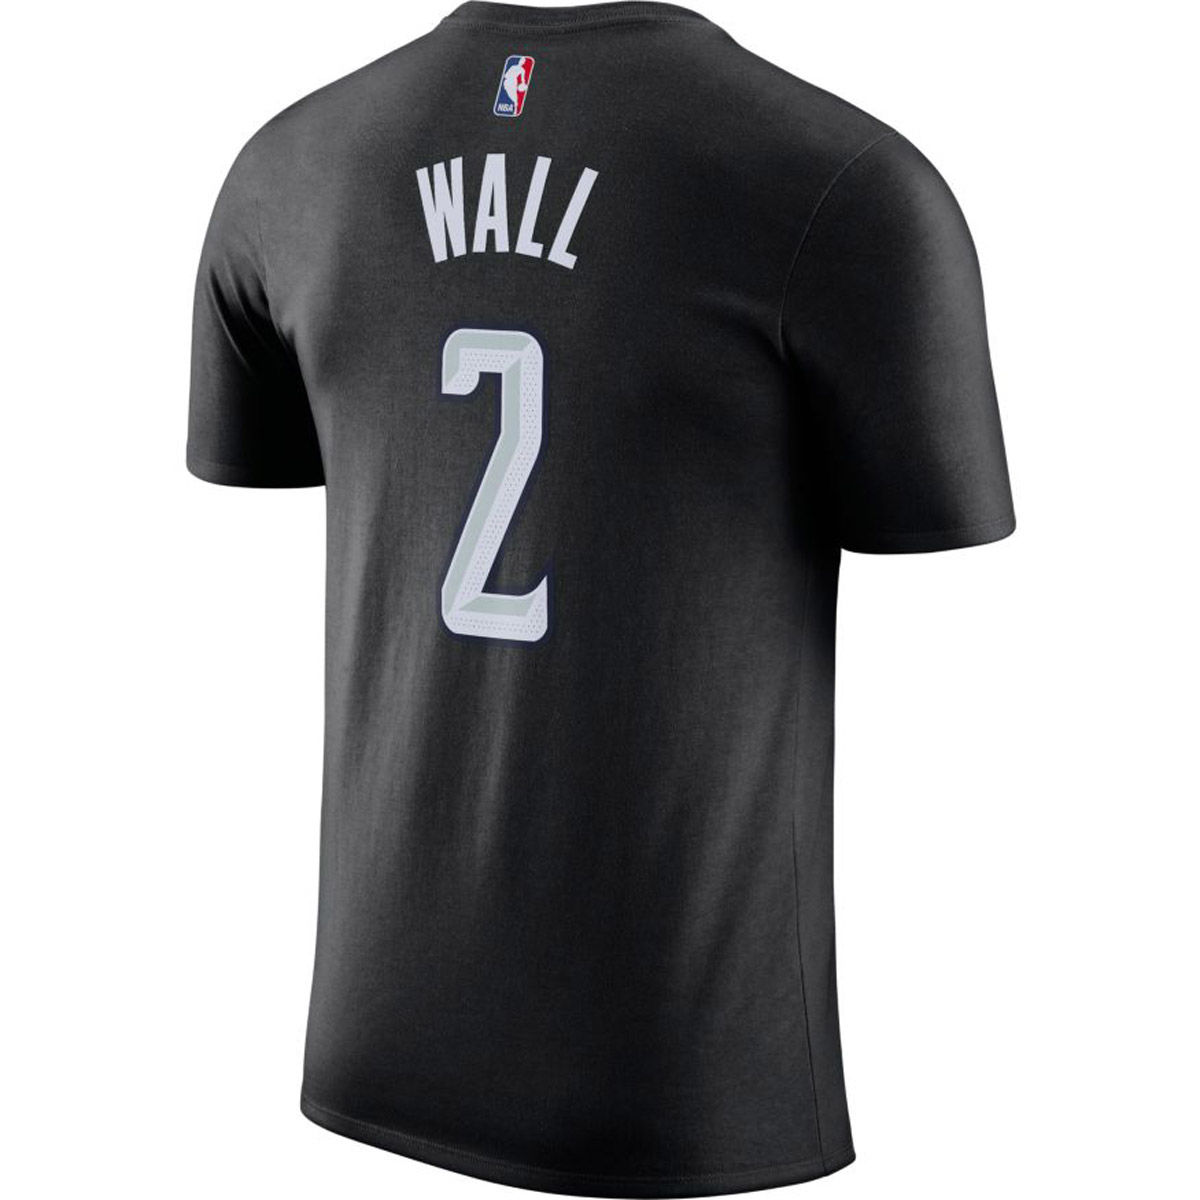 Washington Wizards Adult John Wall City Edition Name & Number T-Shirt